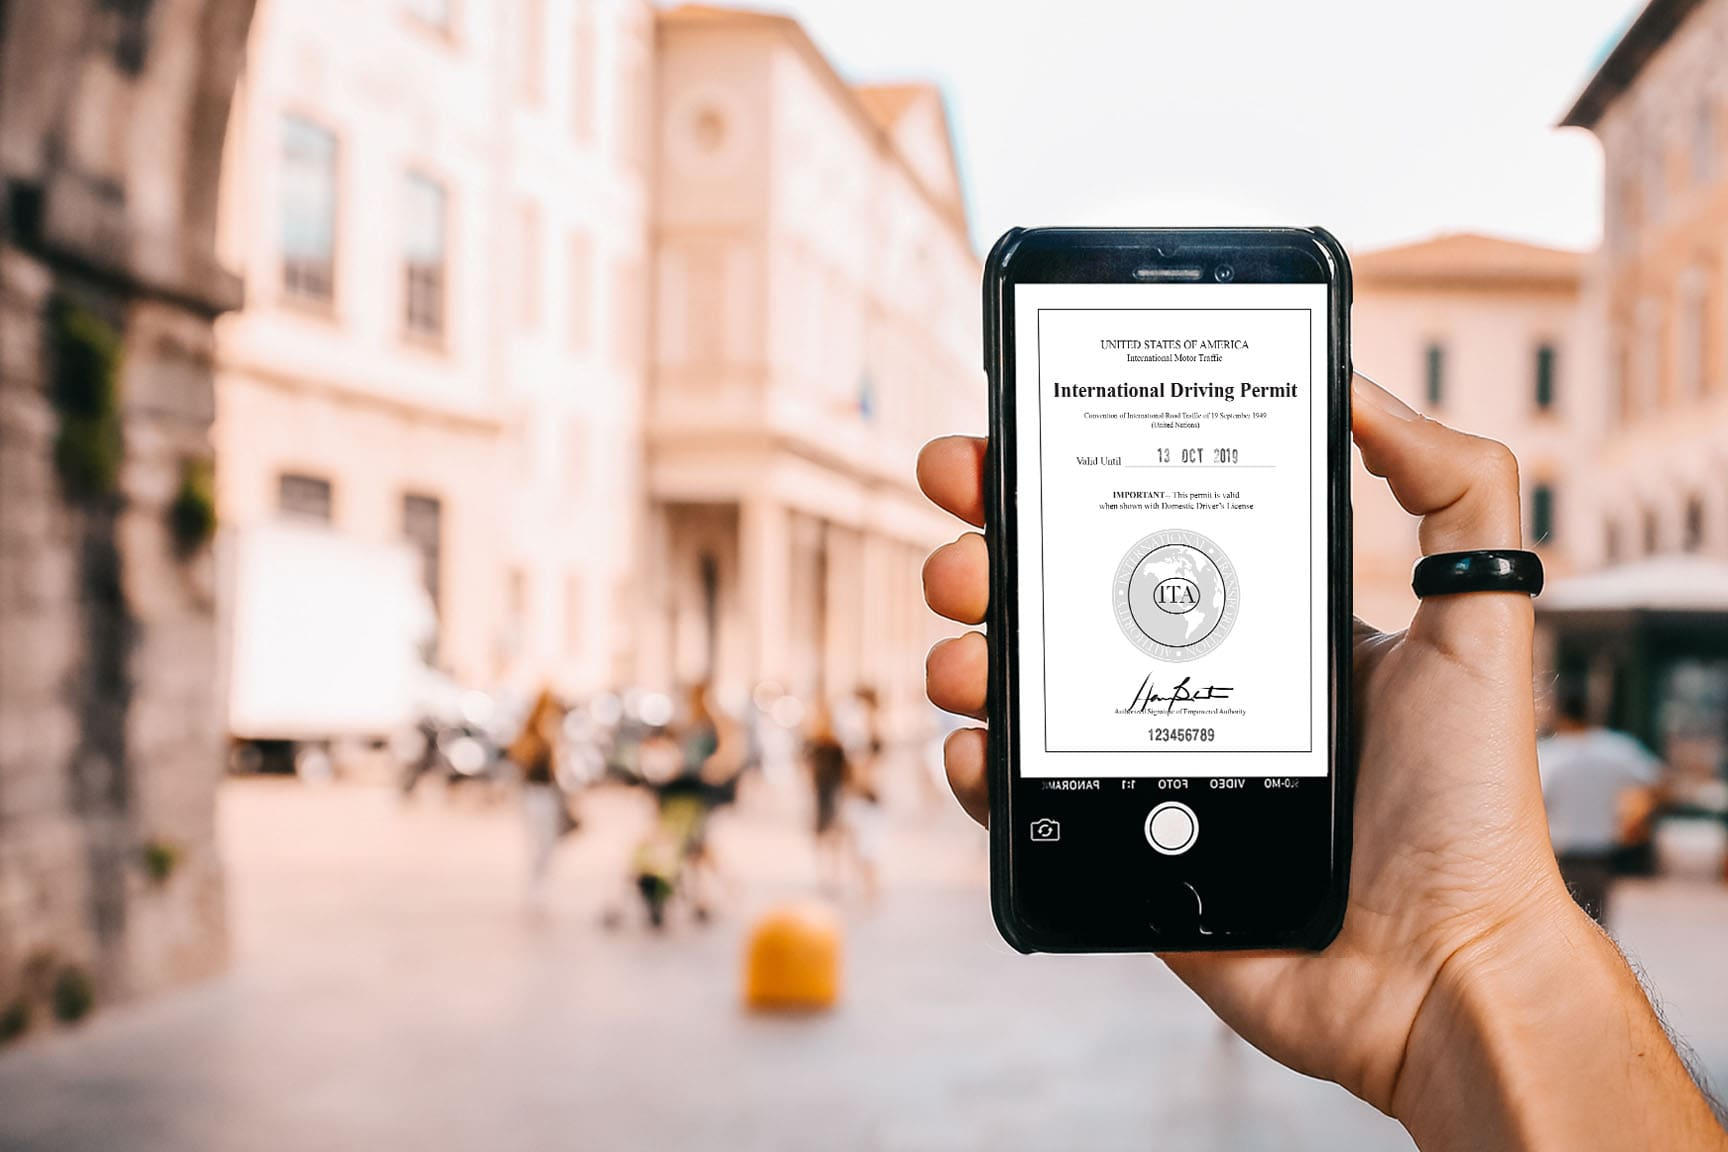 Get Your International Driver's License Anywhere in the World